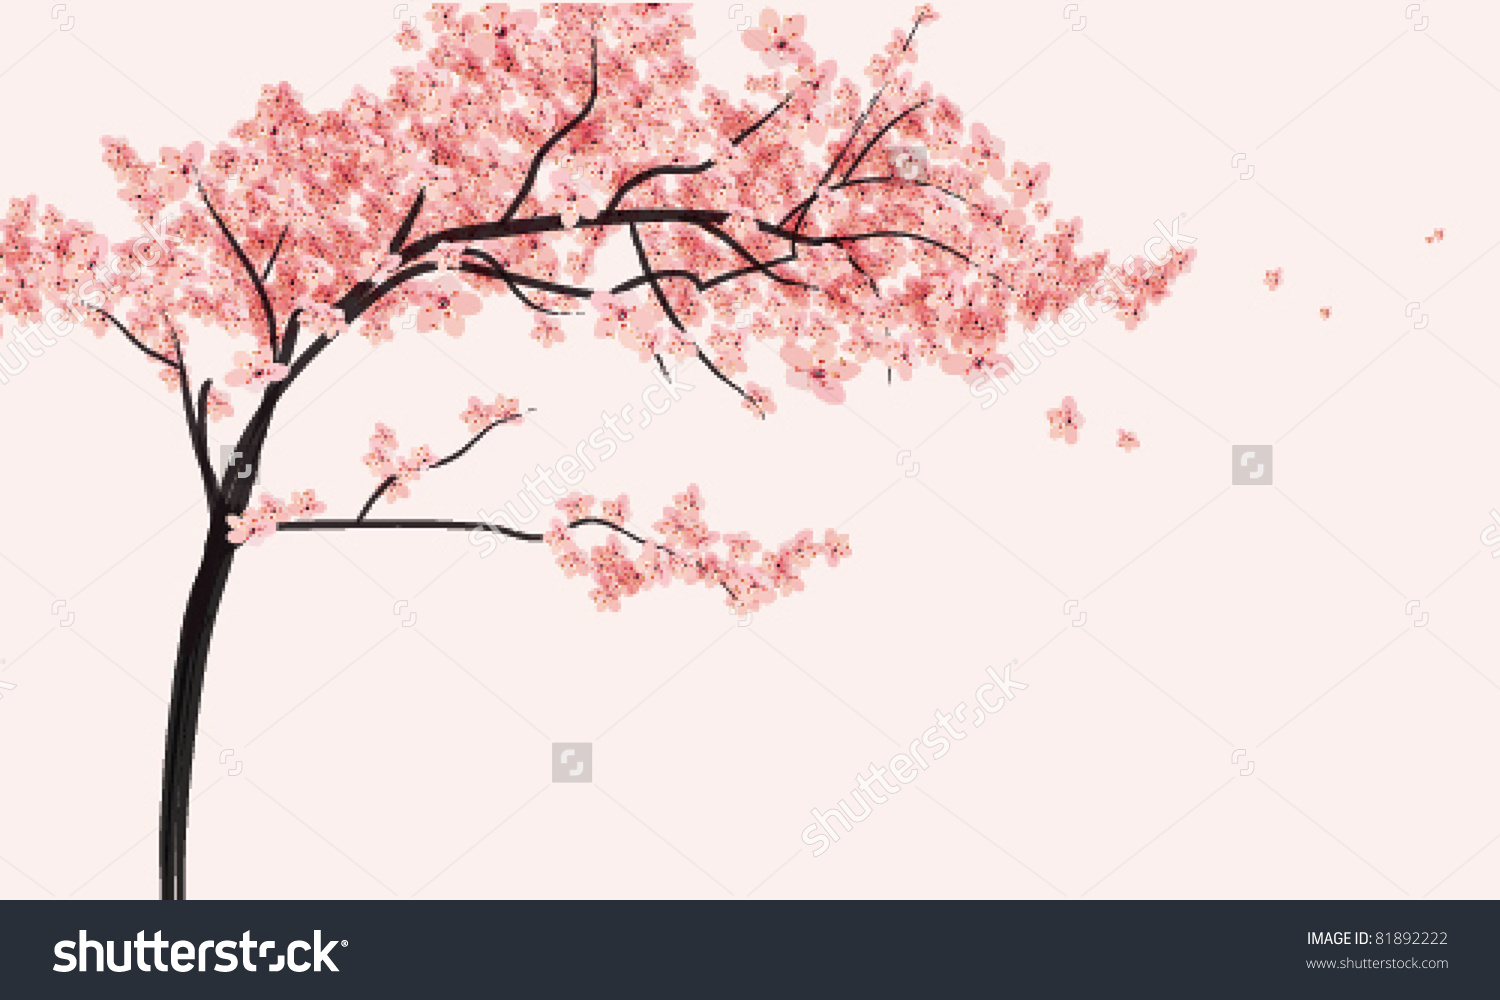 Cherry Blossomtree Flowers Vector Illustration Stock Vector.